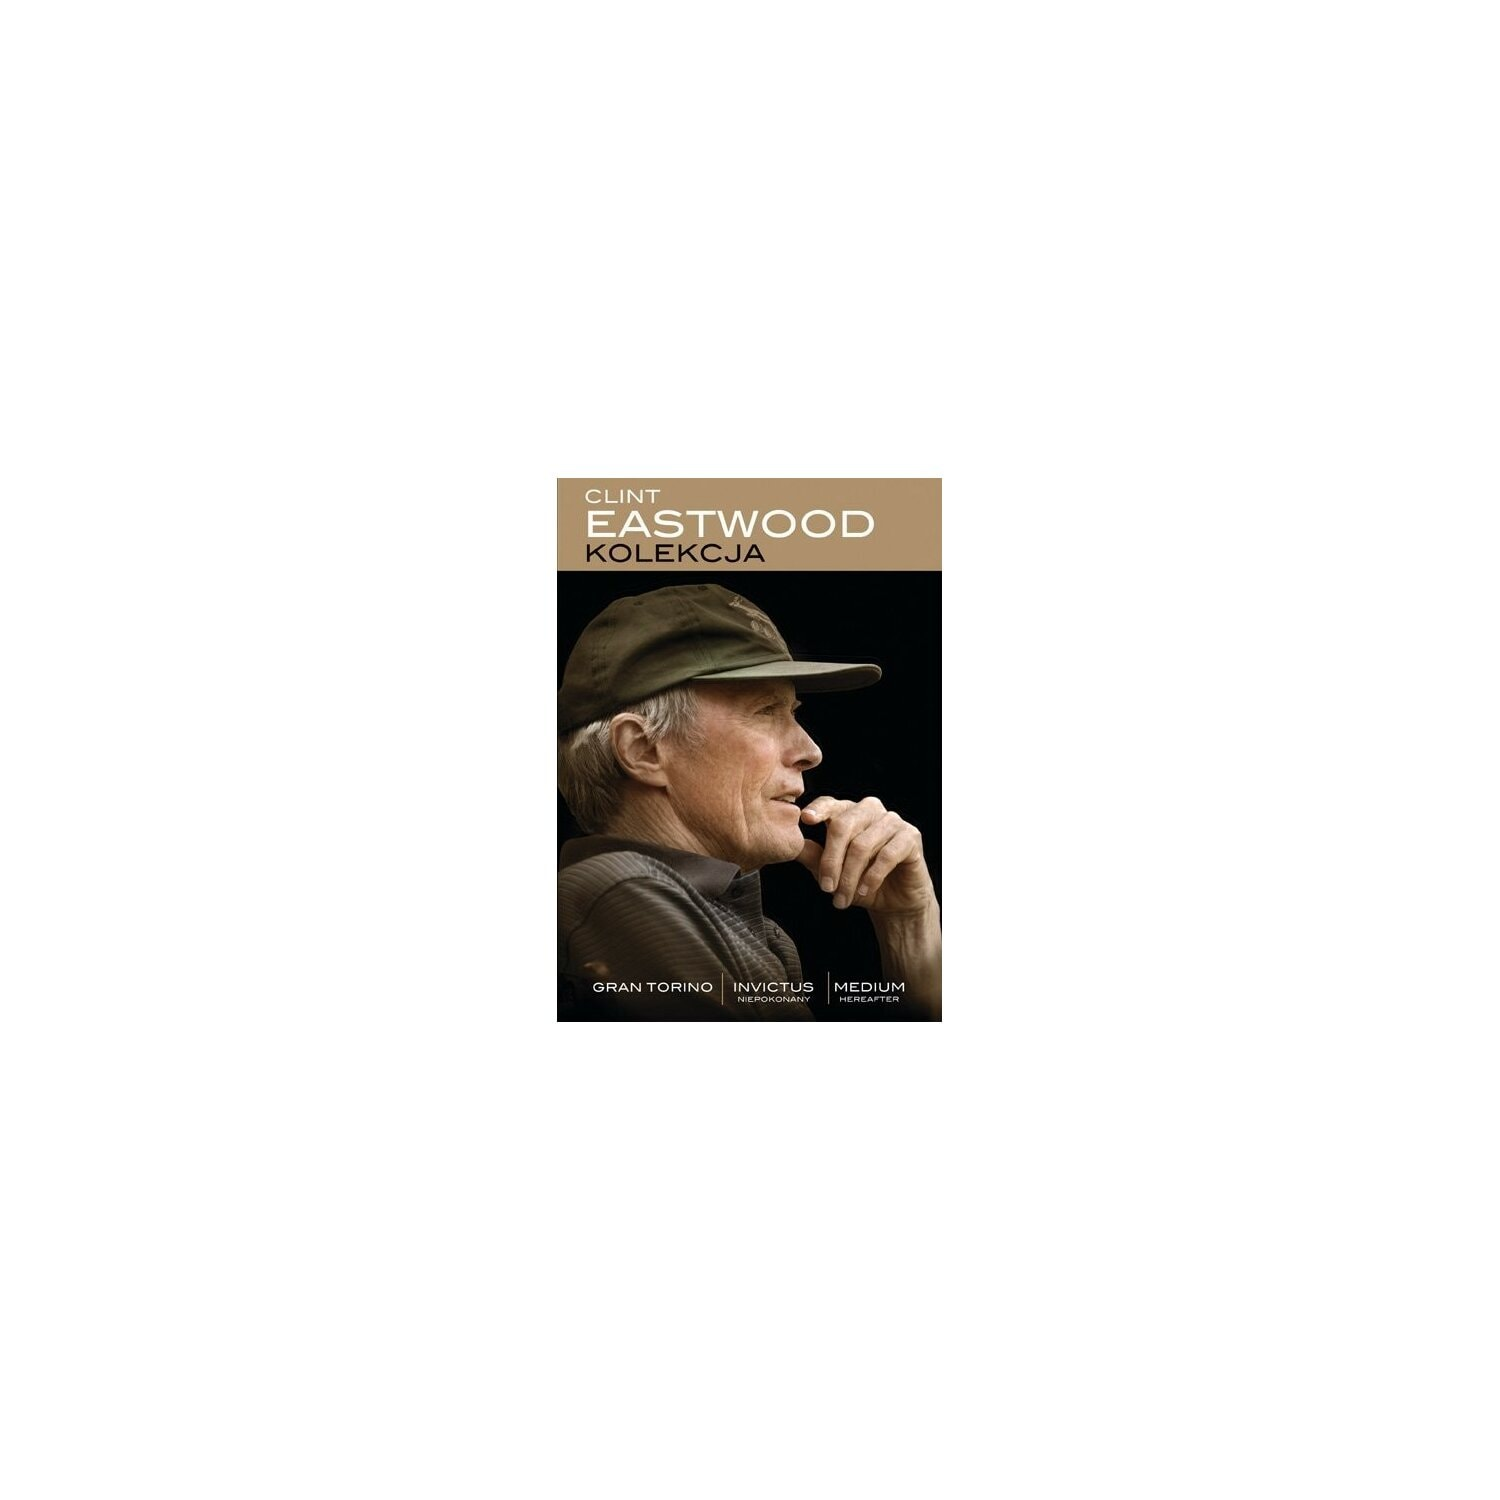 Film GALAPAGOS Clint Eastwood Kolekcja (Medium, Gran Torino, Invictus)